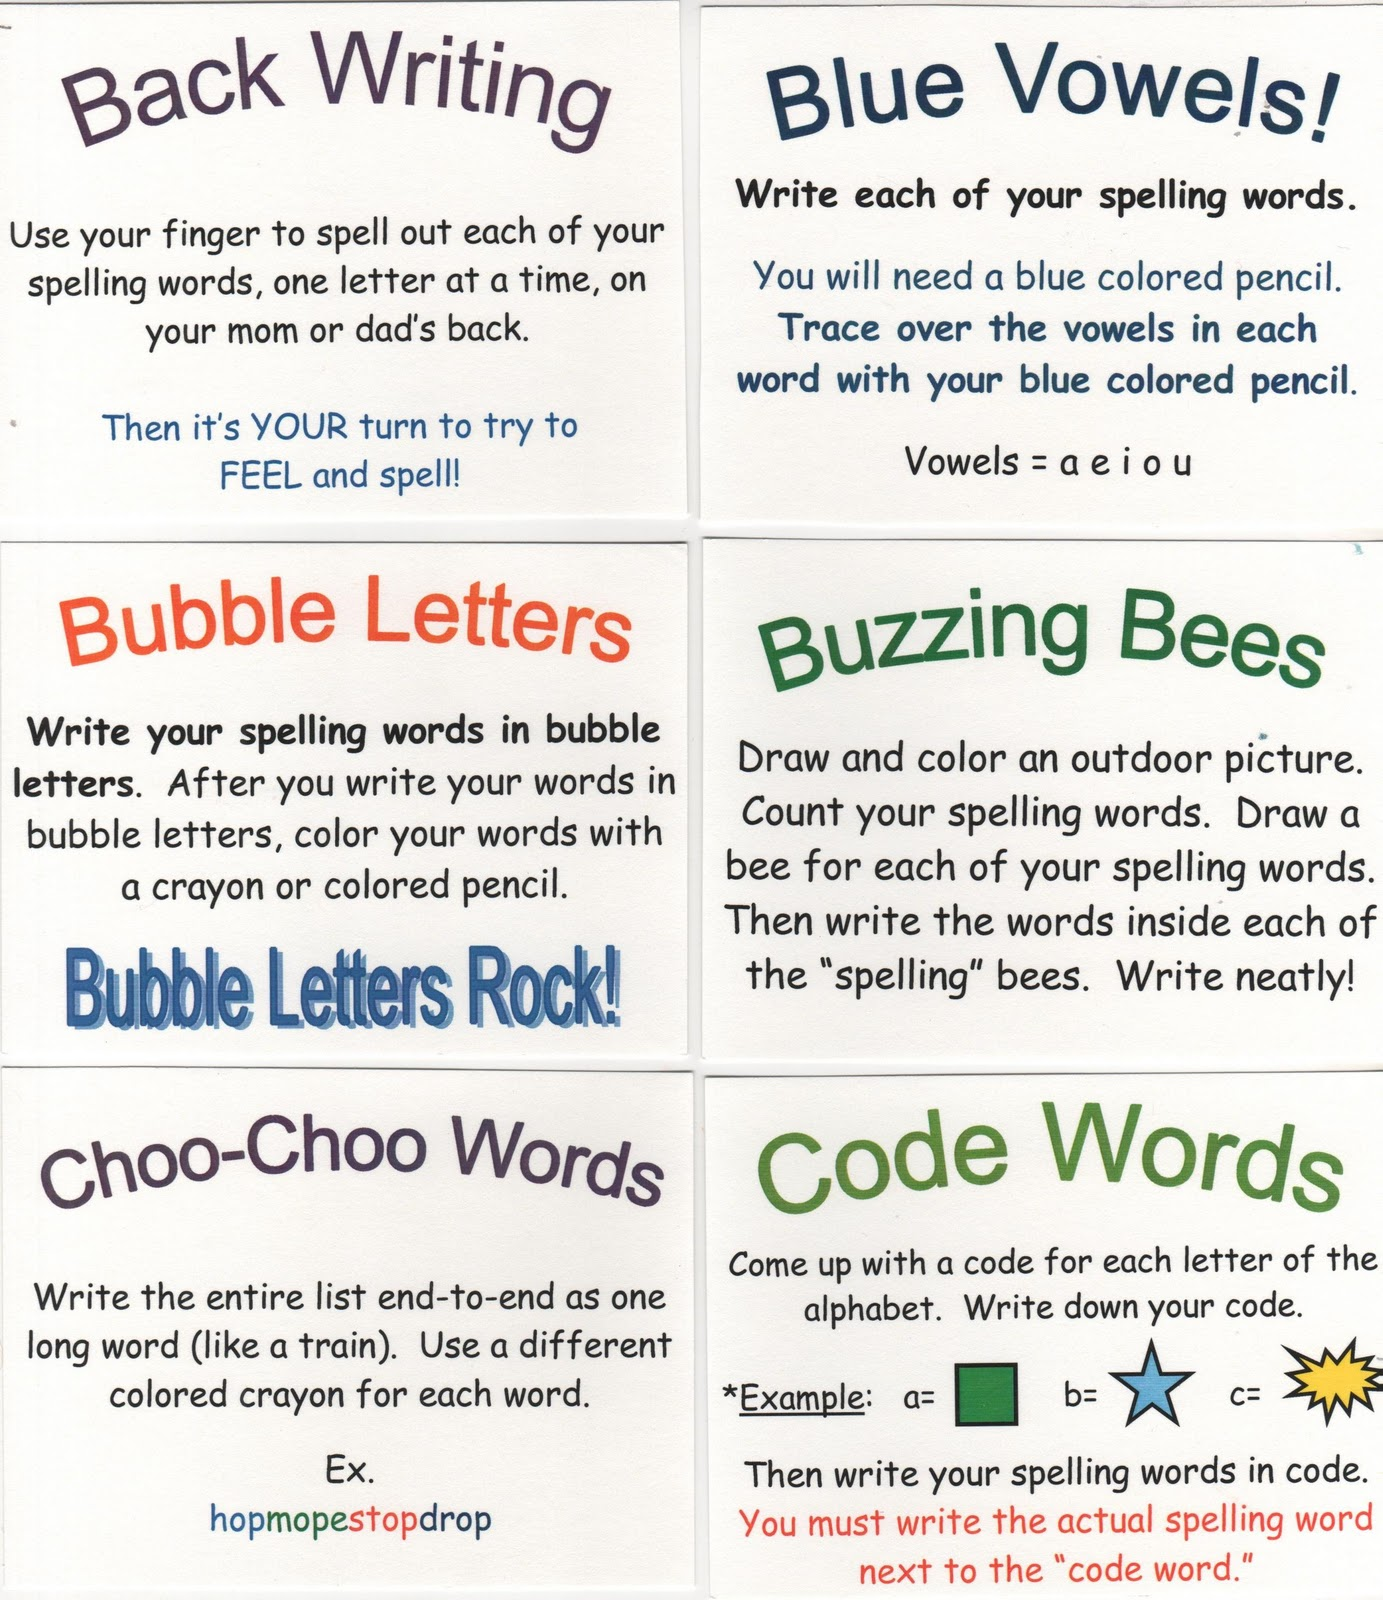 ELEMENTARY SCHOOL ENRICHMENT ACTIVITIES: 72 SPELLING IDEAS